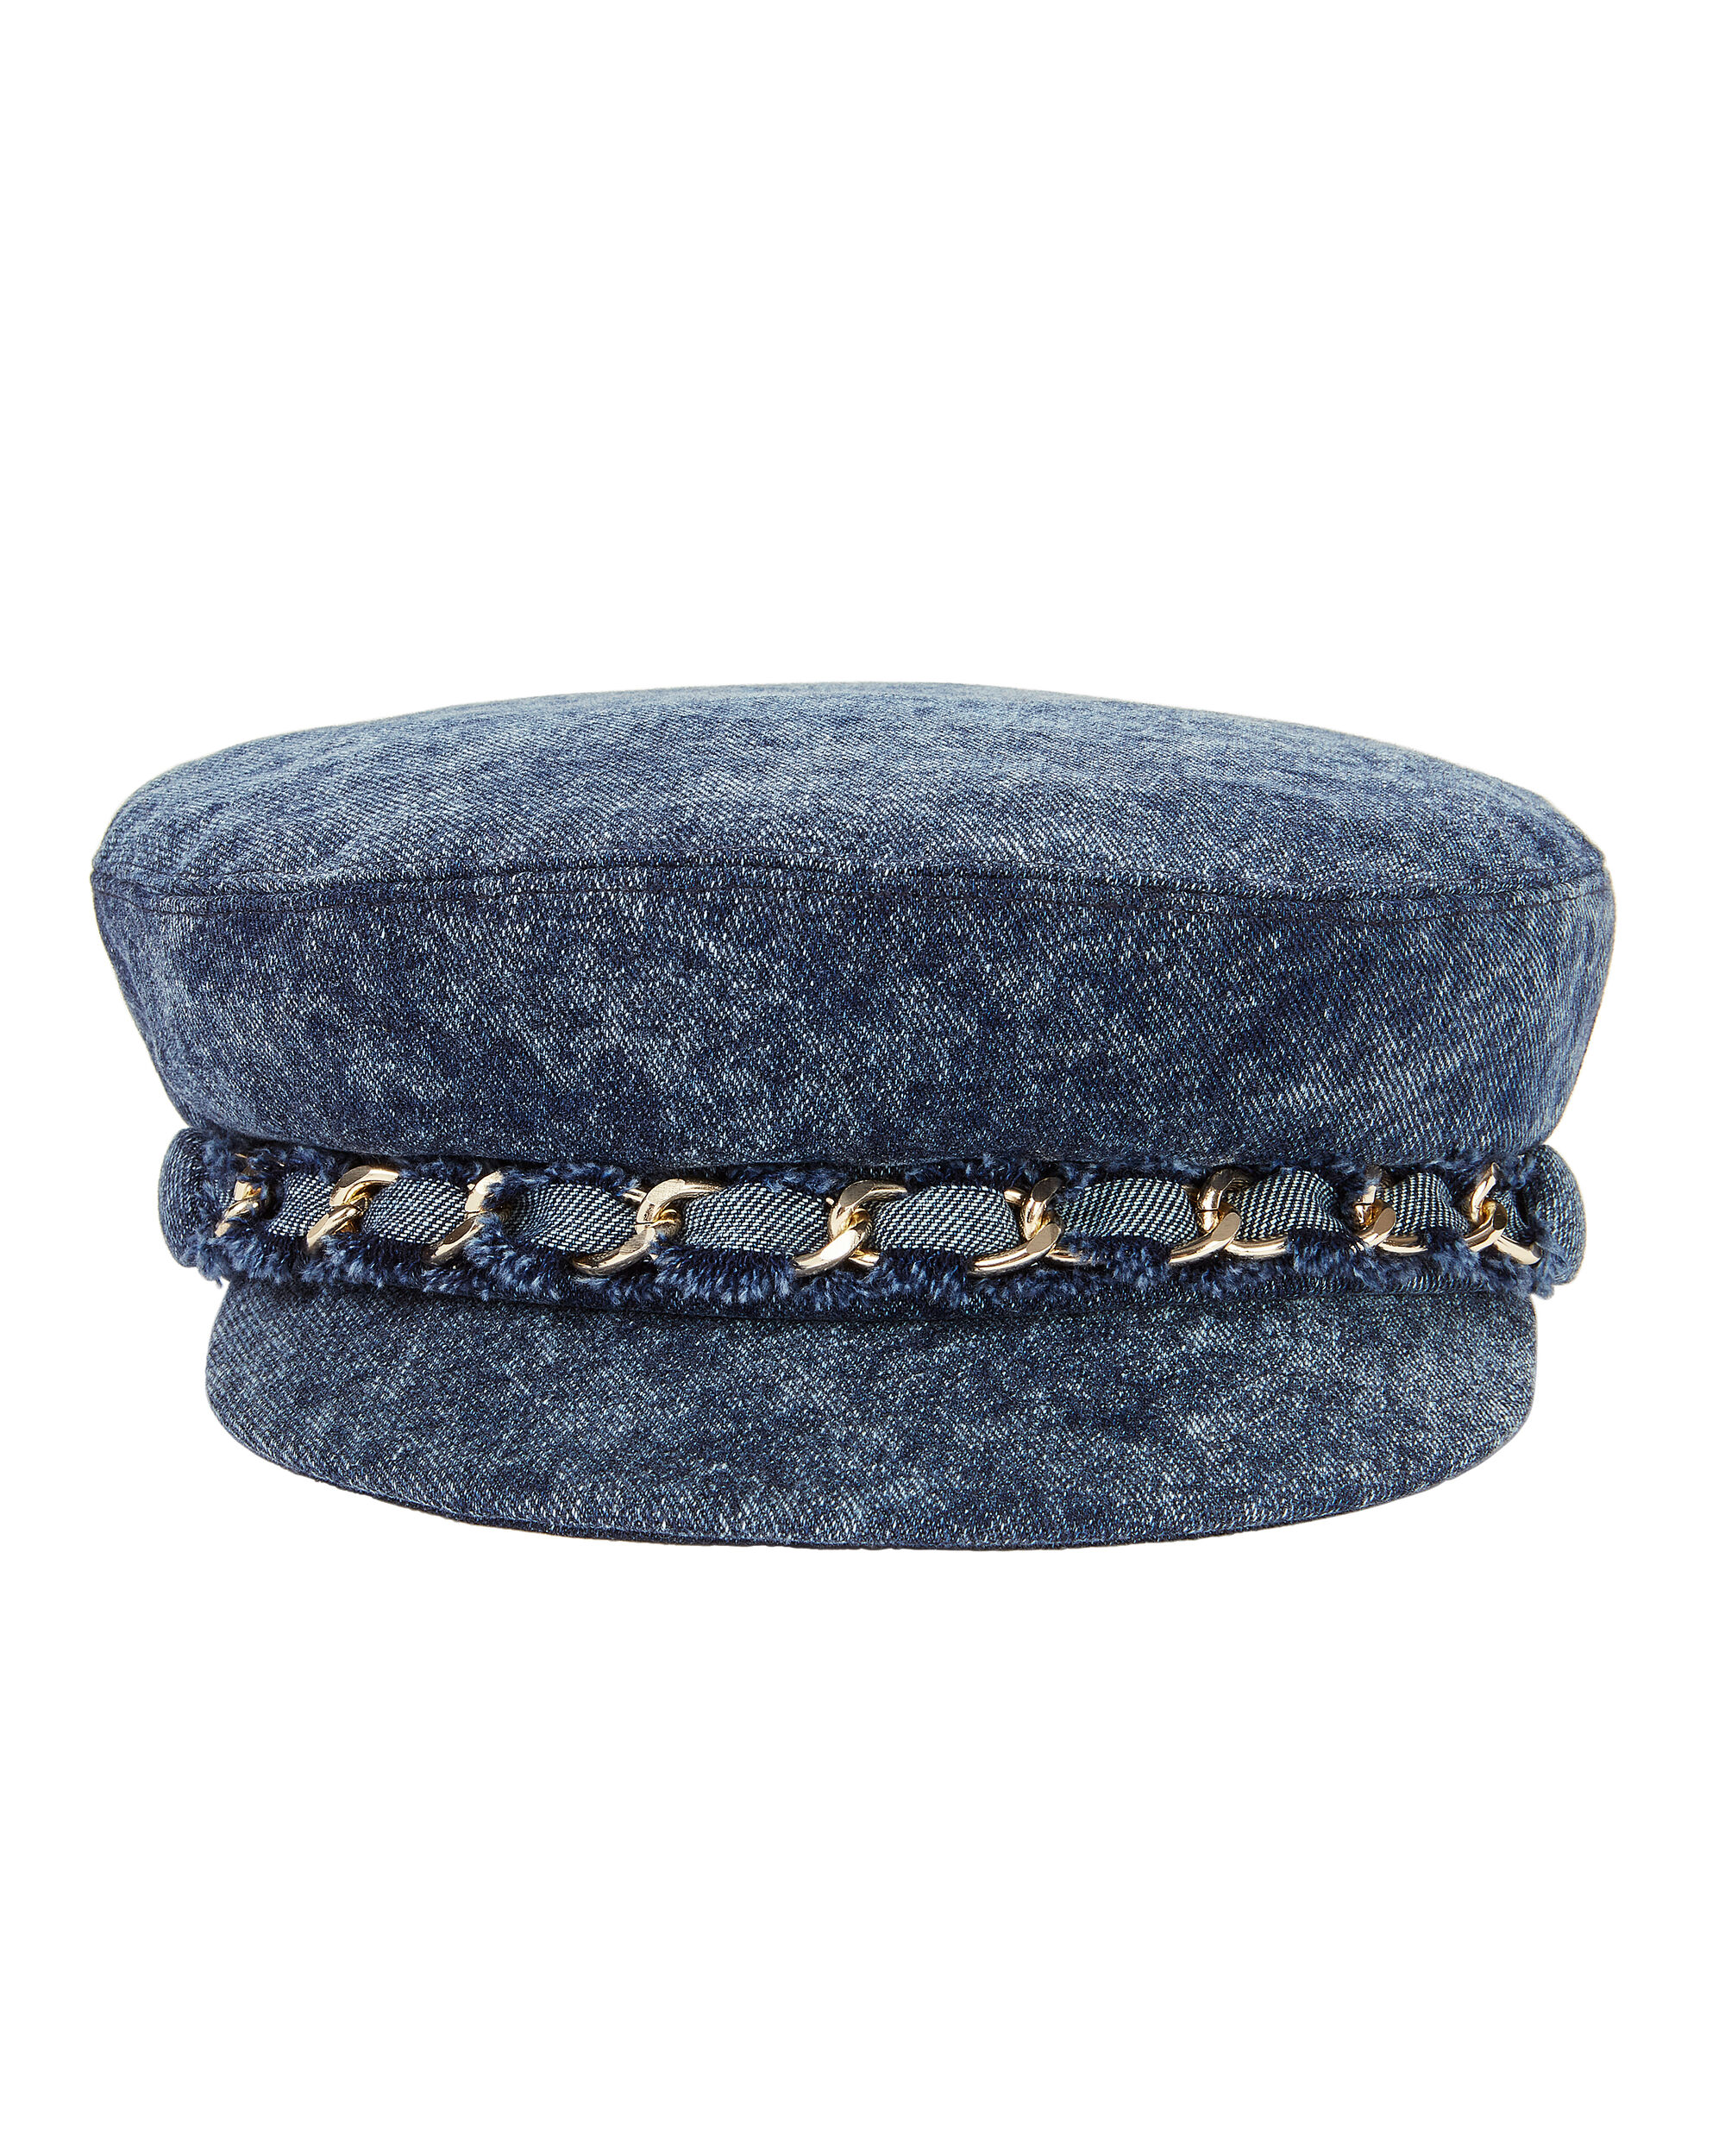 Marina Denim Newsboy Cap, DENIM, hi-res